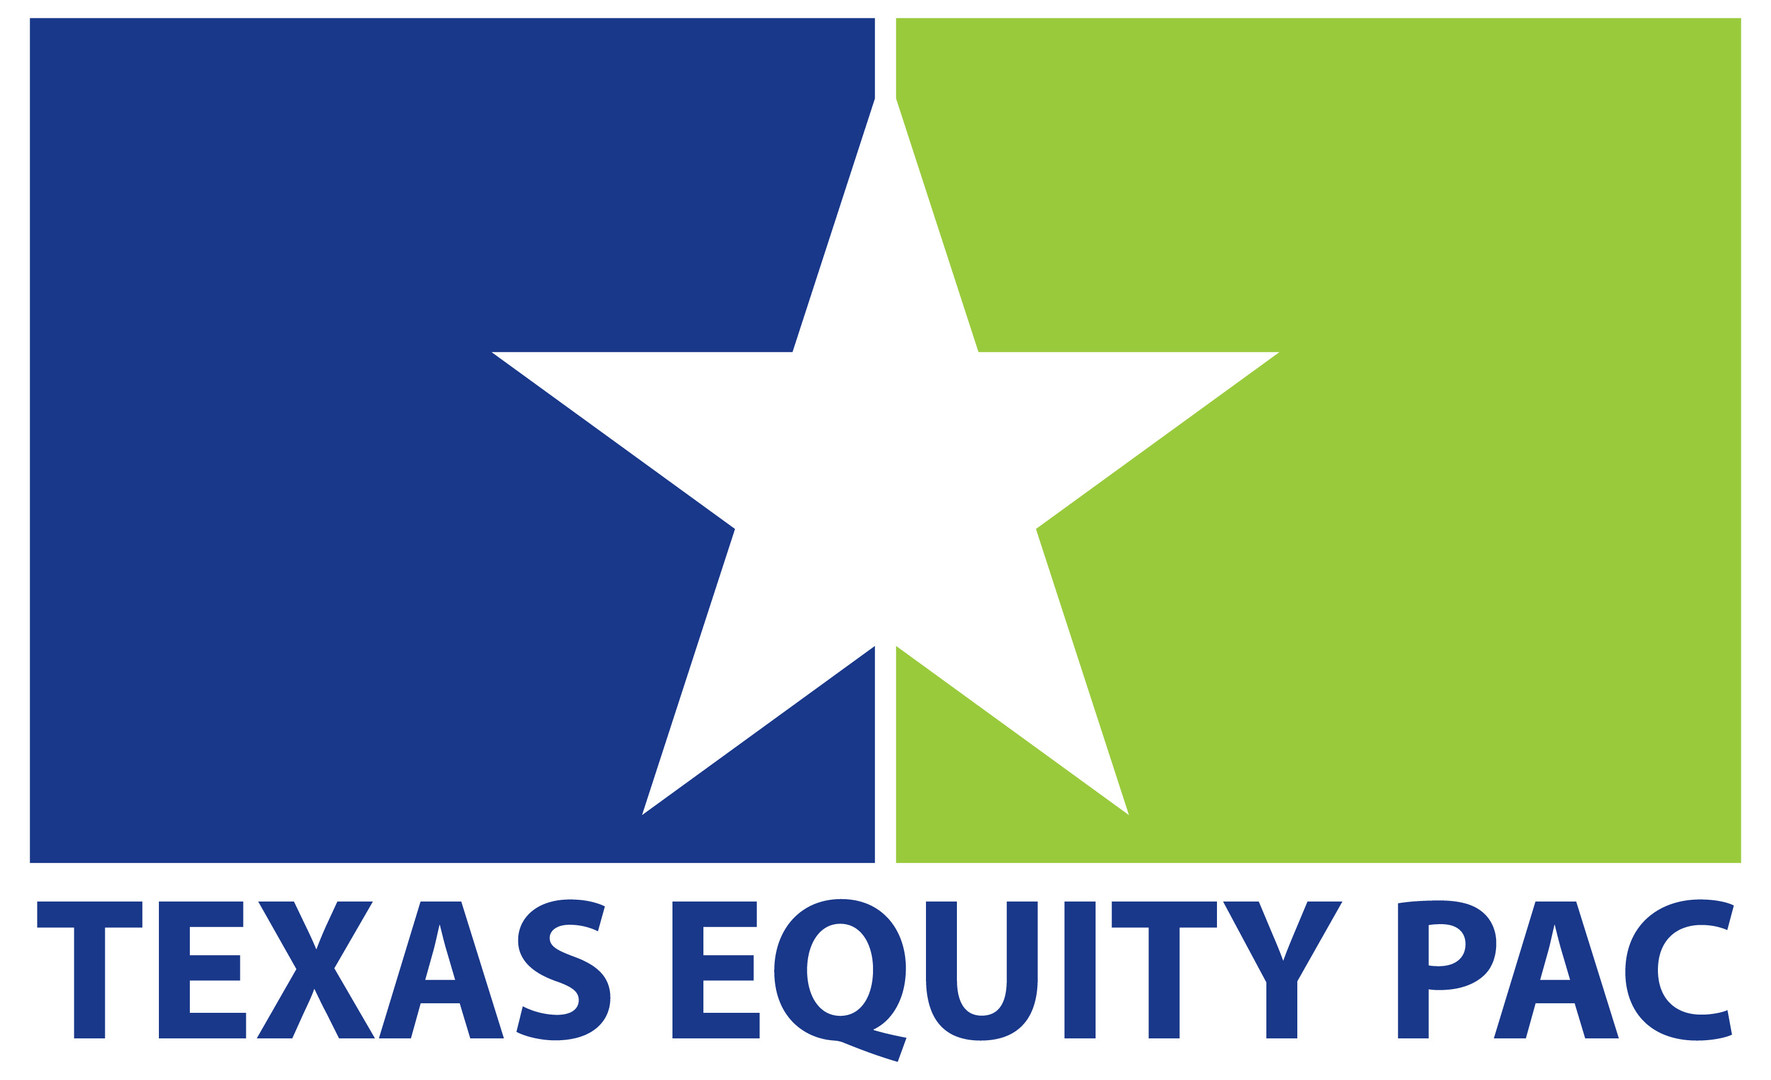 TEXAS EQUITY PAC - large.jpg